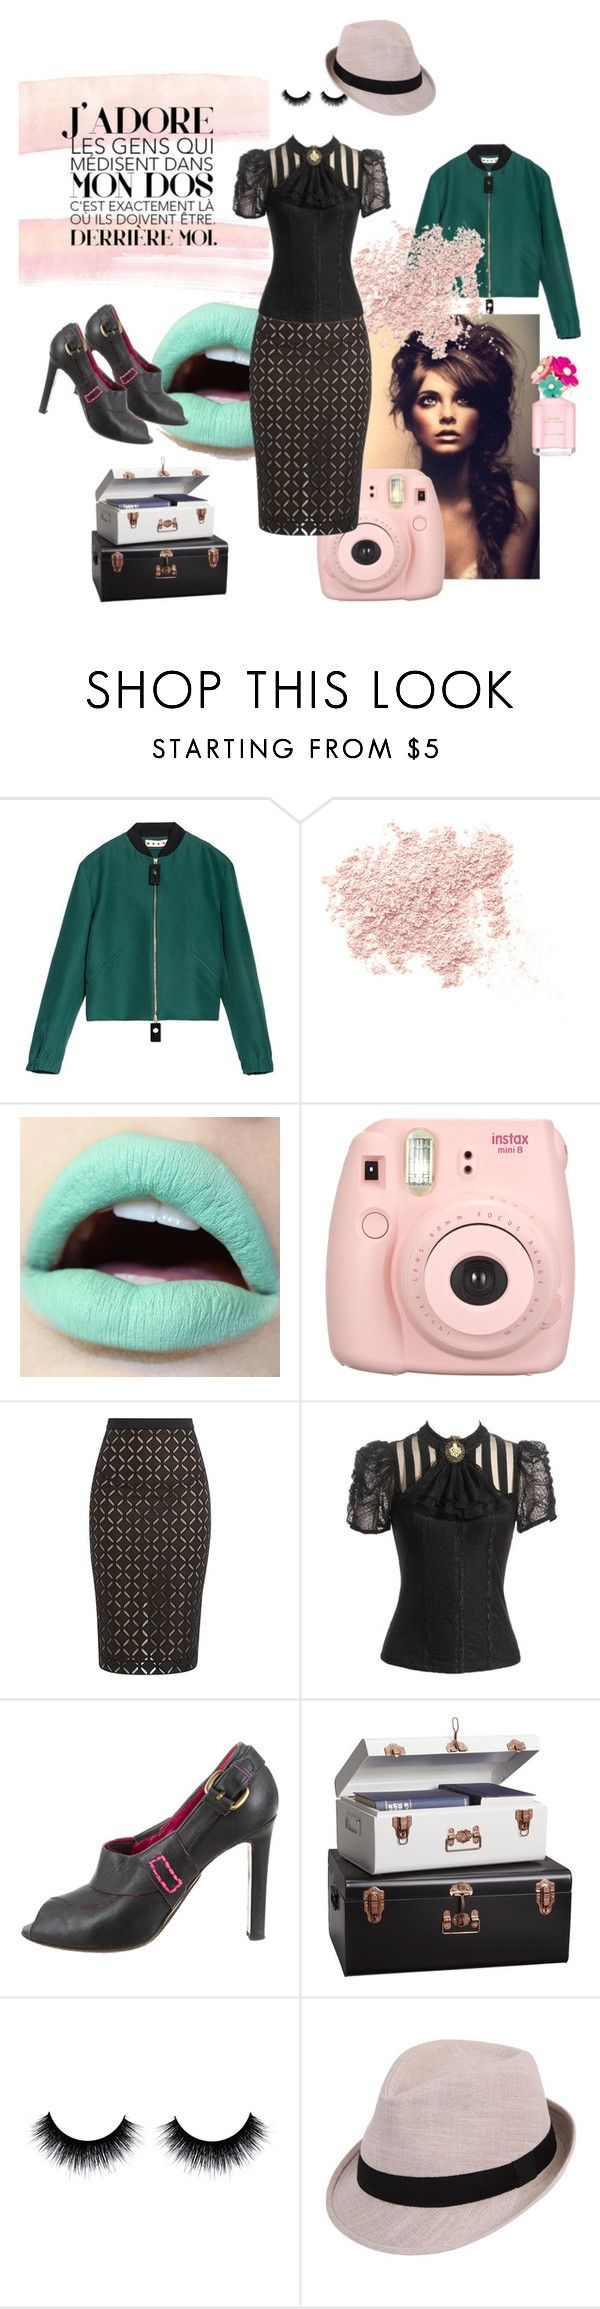 """""""J'ADORE"""" by pinfi on Polyvore featuring Marni, Bare Escentuals, Marc Jacobs, Roland Mouret and Manolo Blahnik"""